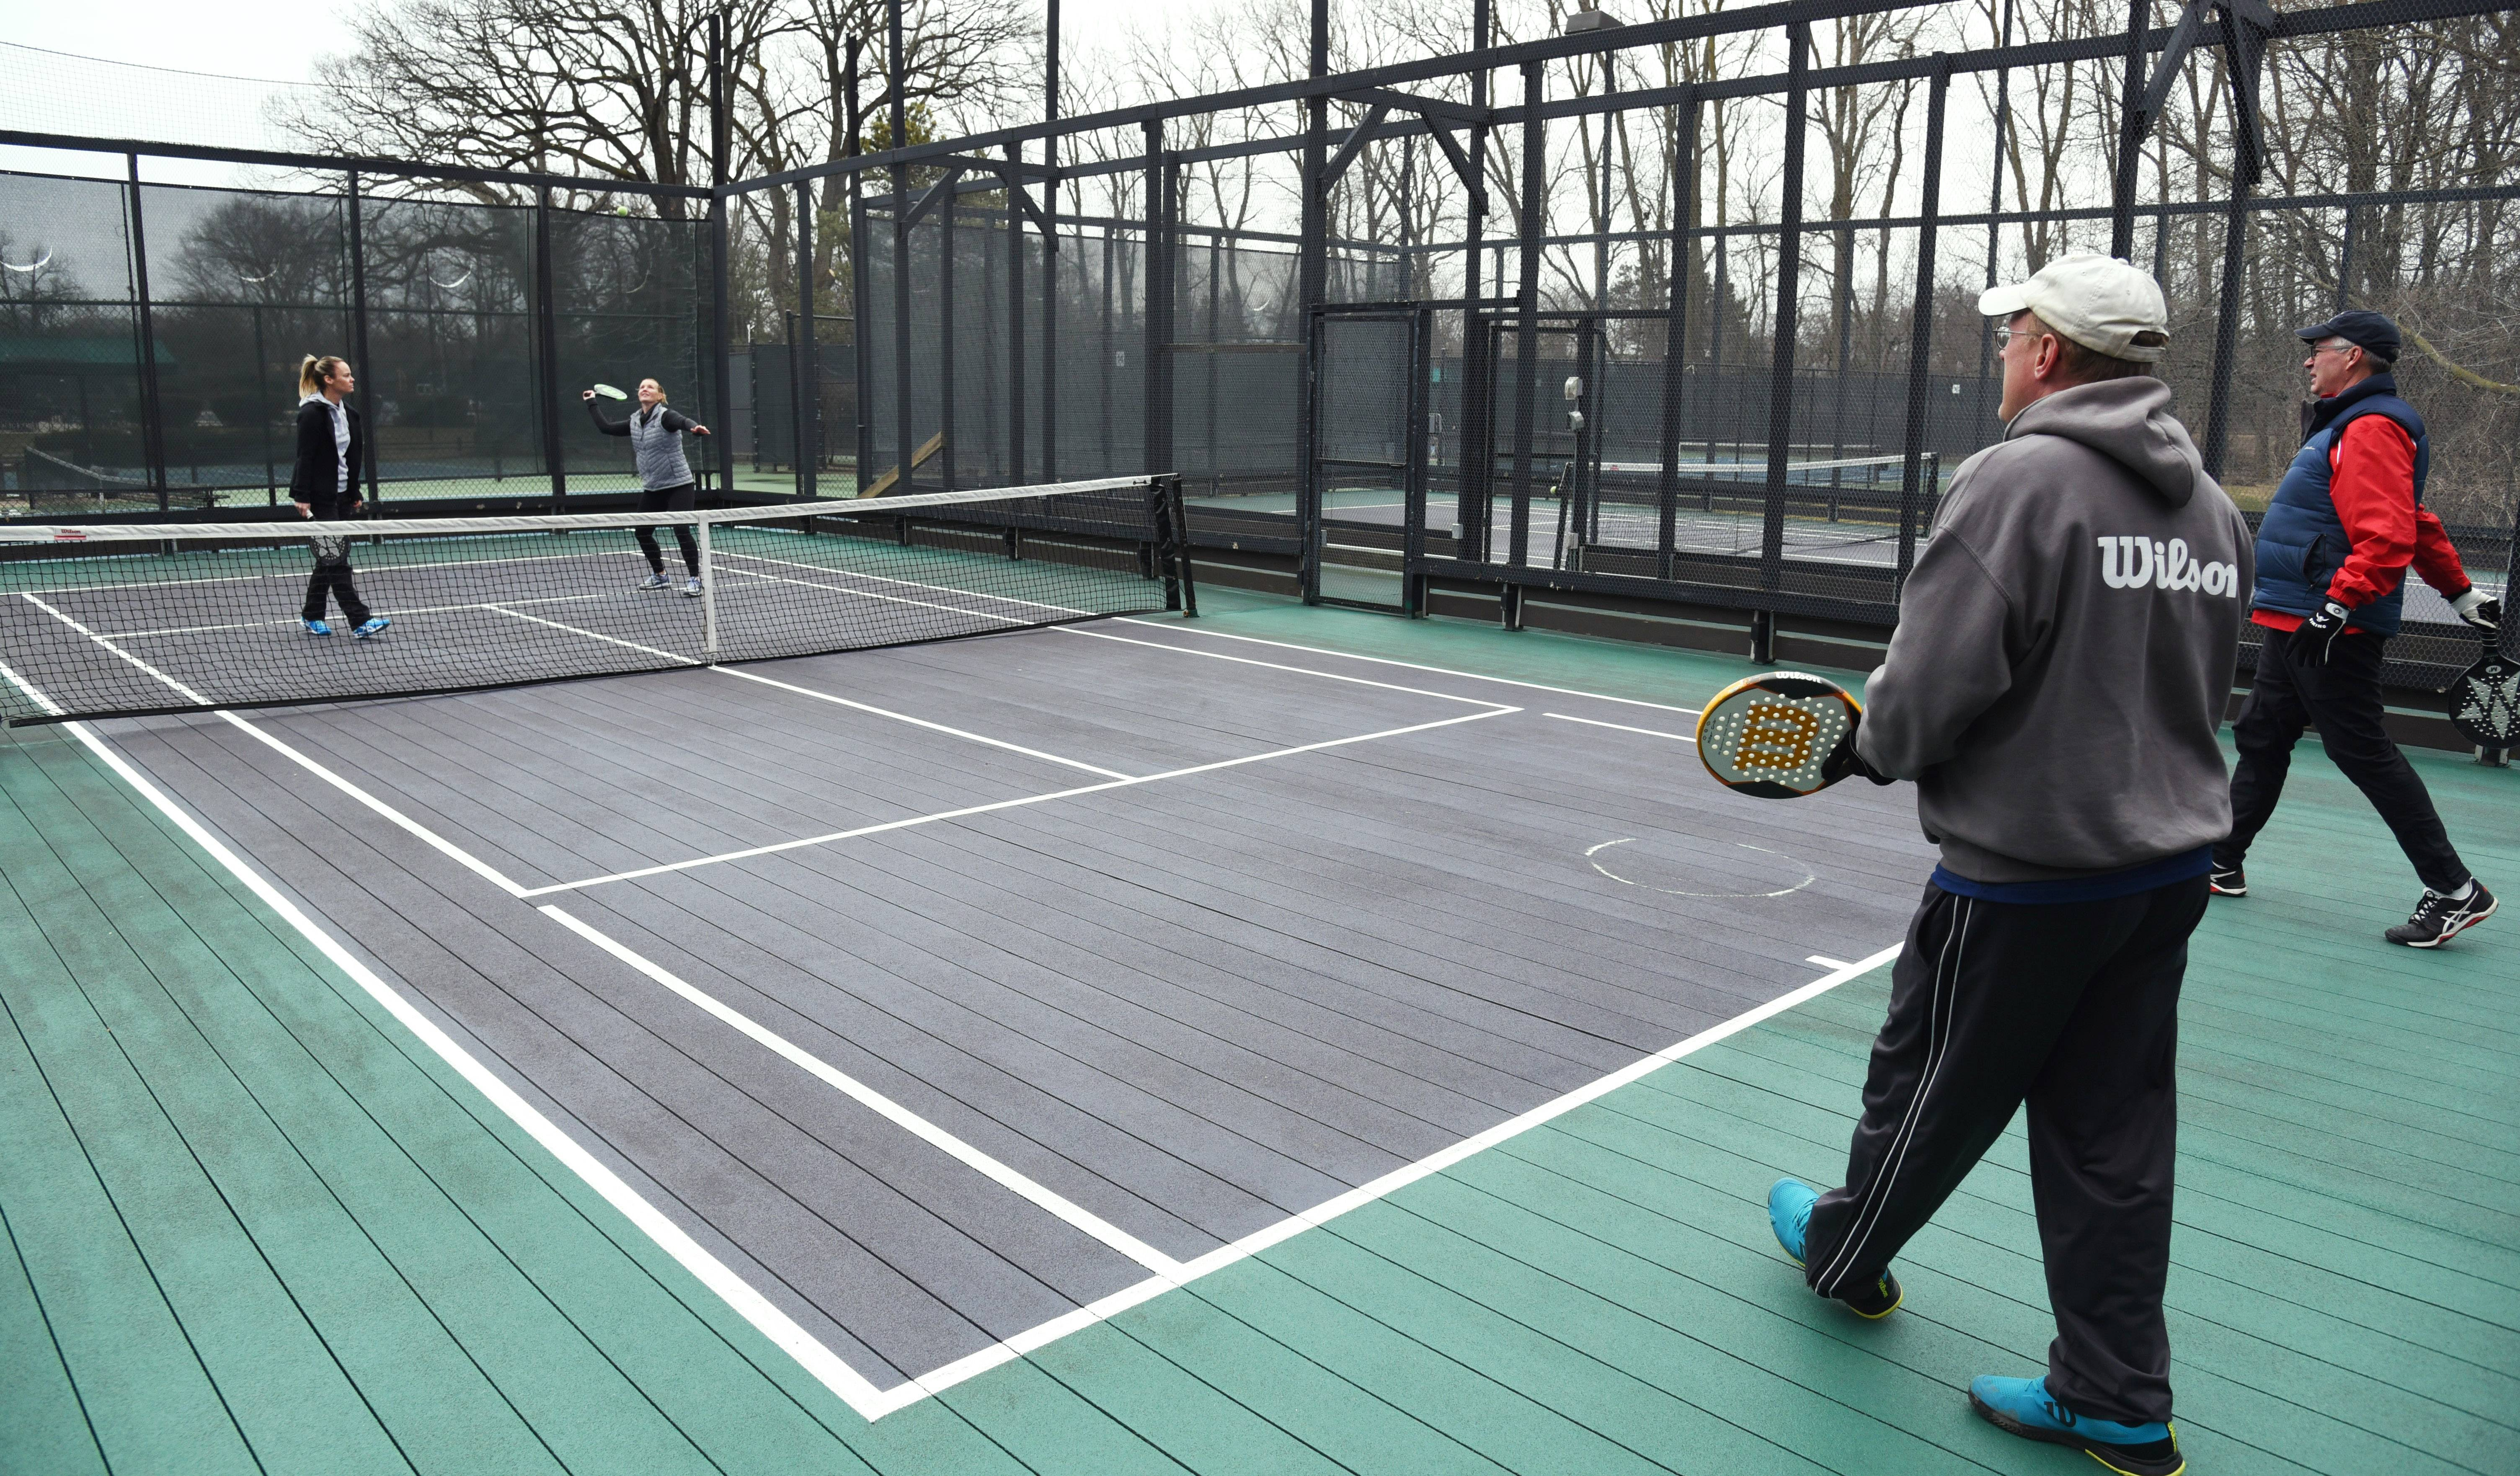 Platform tennis players Laura Berendt, left, and Alison Morgan play against Bjorn Bernhardtz and Mike Carrico, right, at the Birchwood Club in Highland Park.